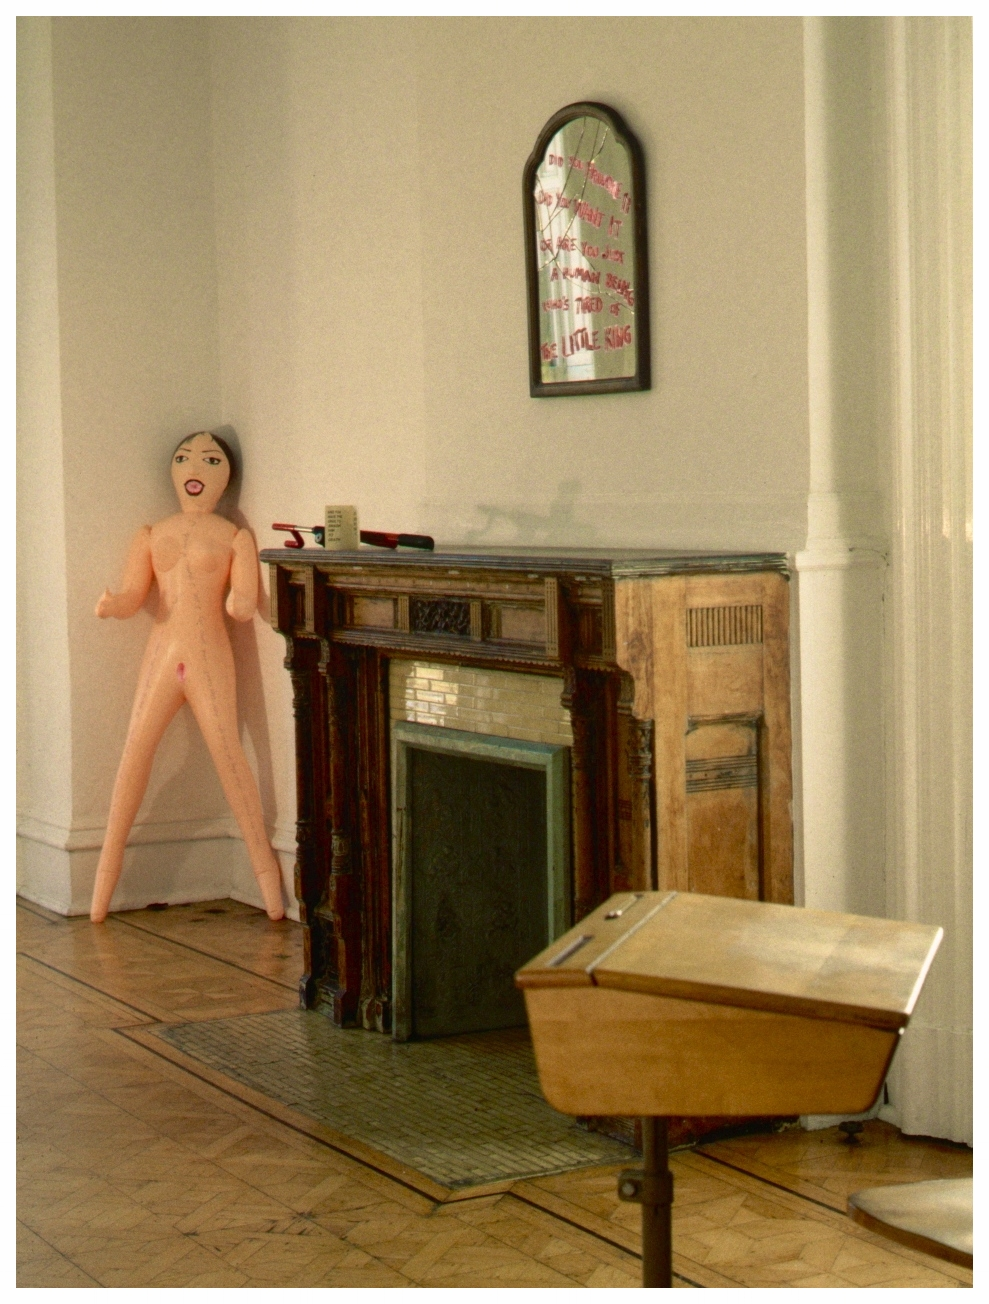 Installation view, WomanMade Gallery 1999